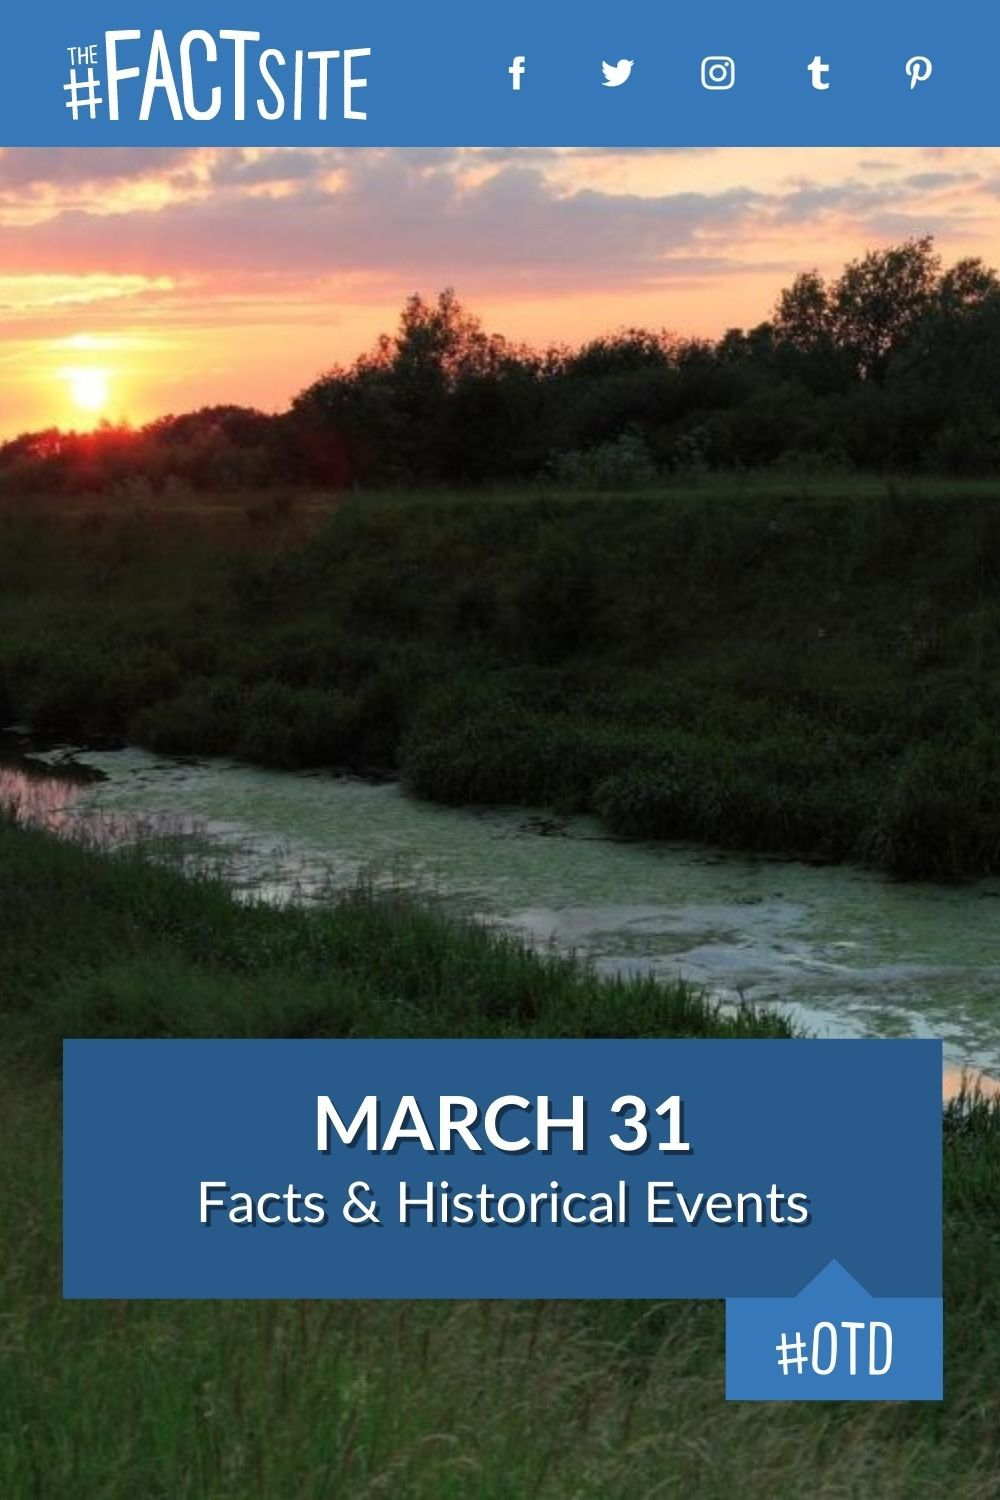 Facts & Historic Events That Happened on March 31